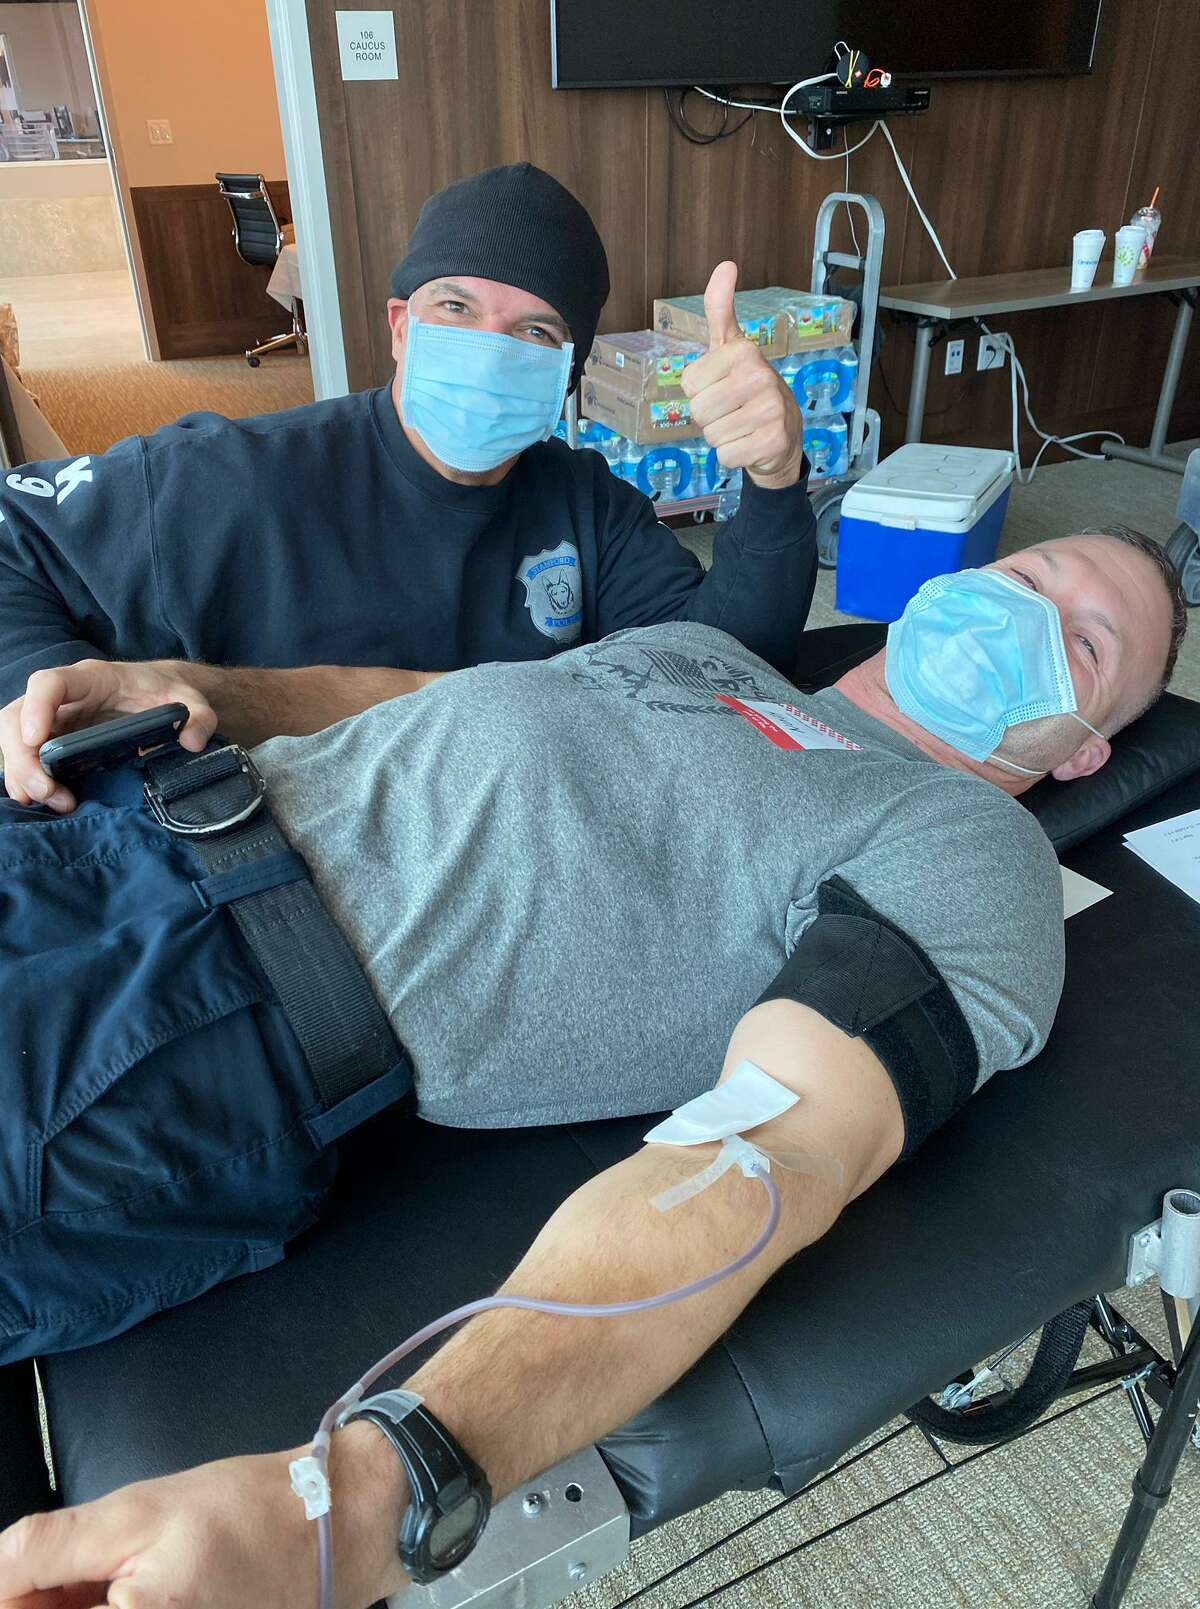 Lt. Doug Deiso and Sgt. Kevin Lynch (lying down) at the Stamford police and fire blood drive on Nov. 17, 2020.